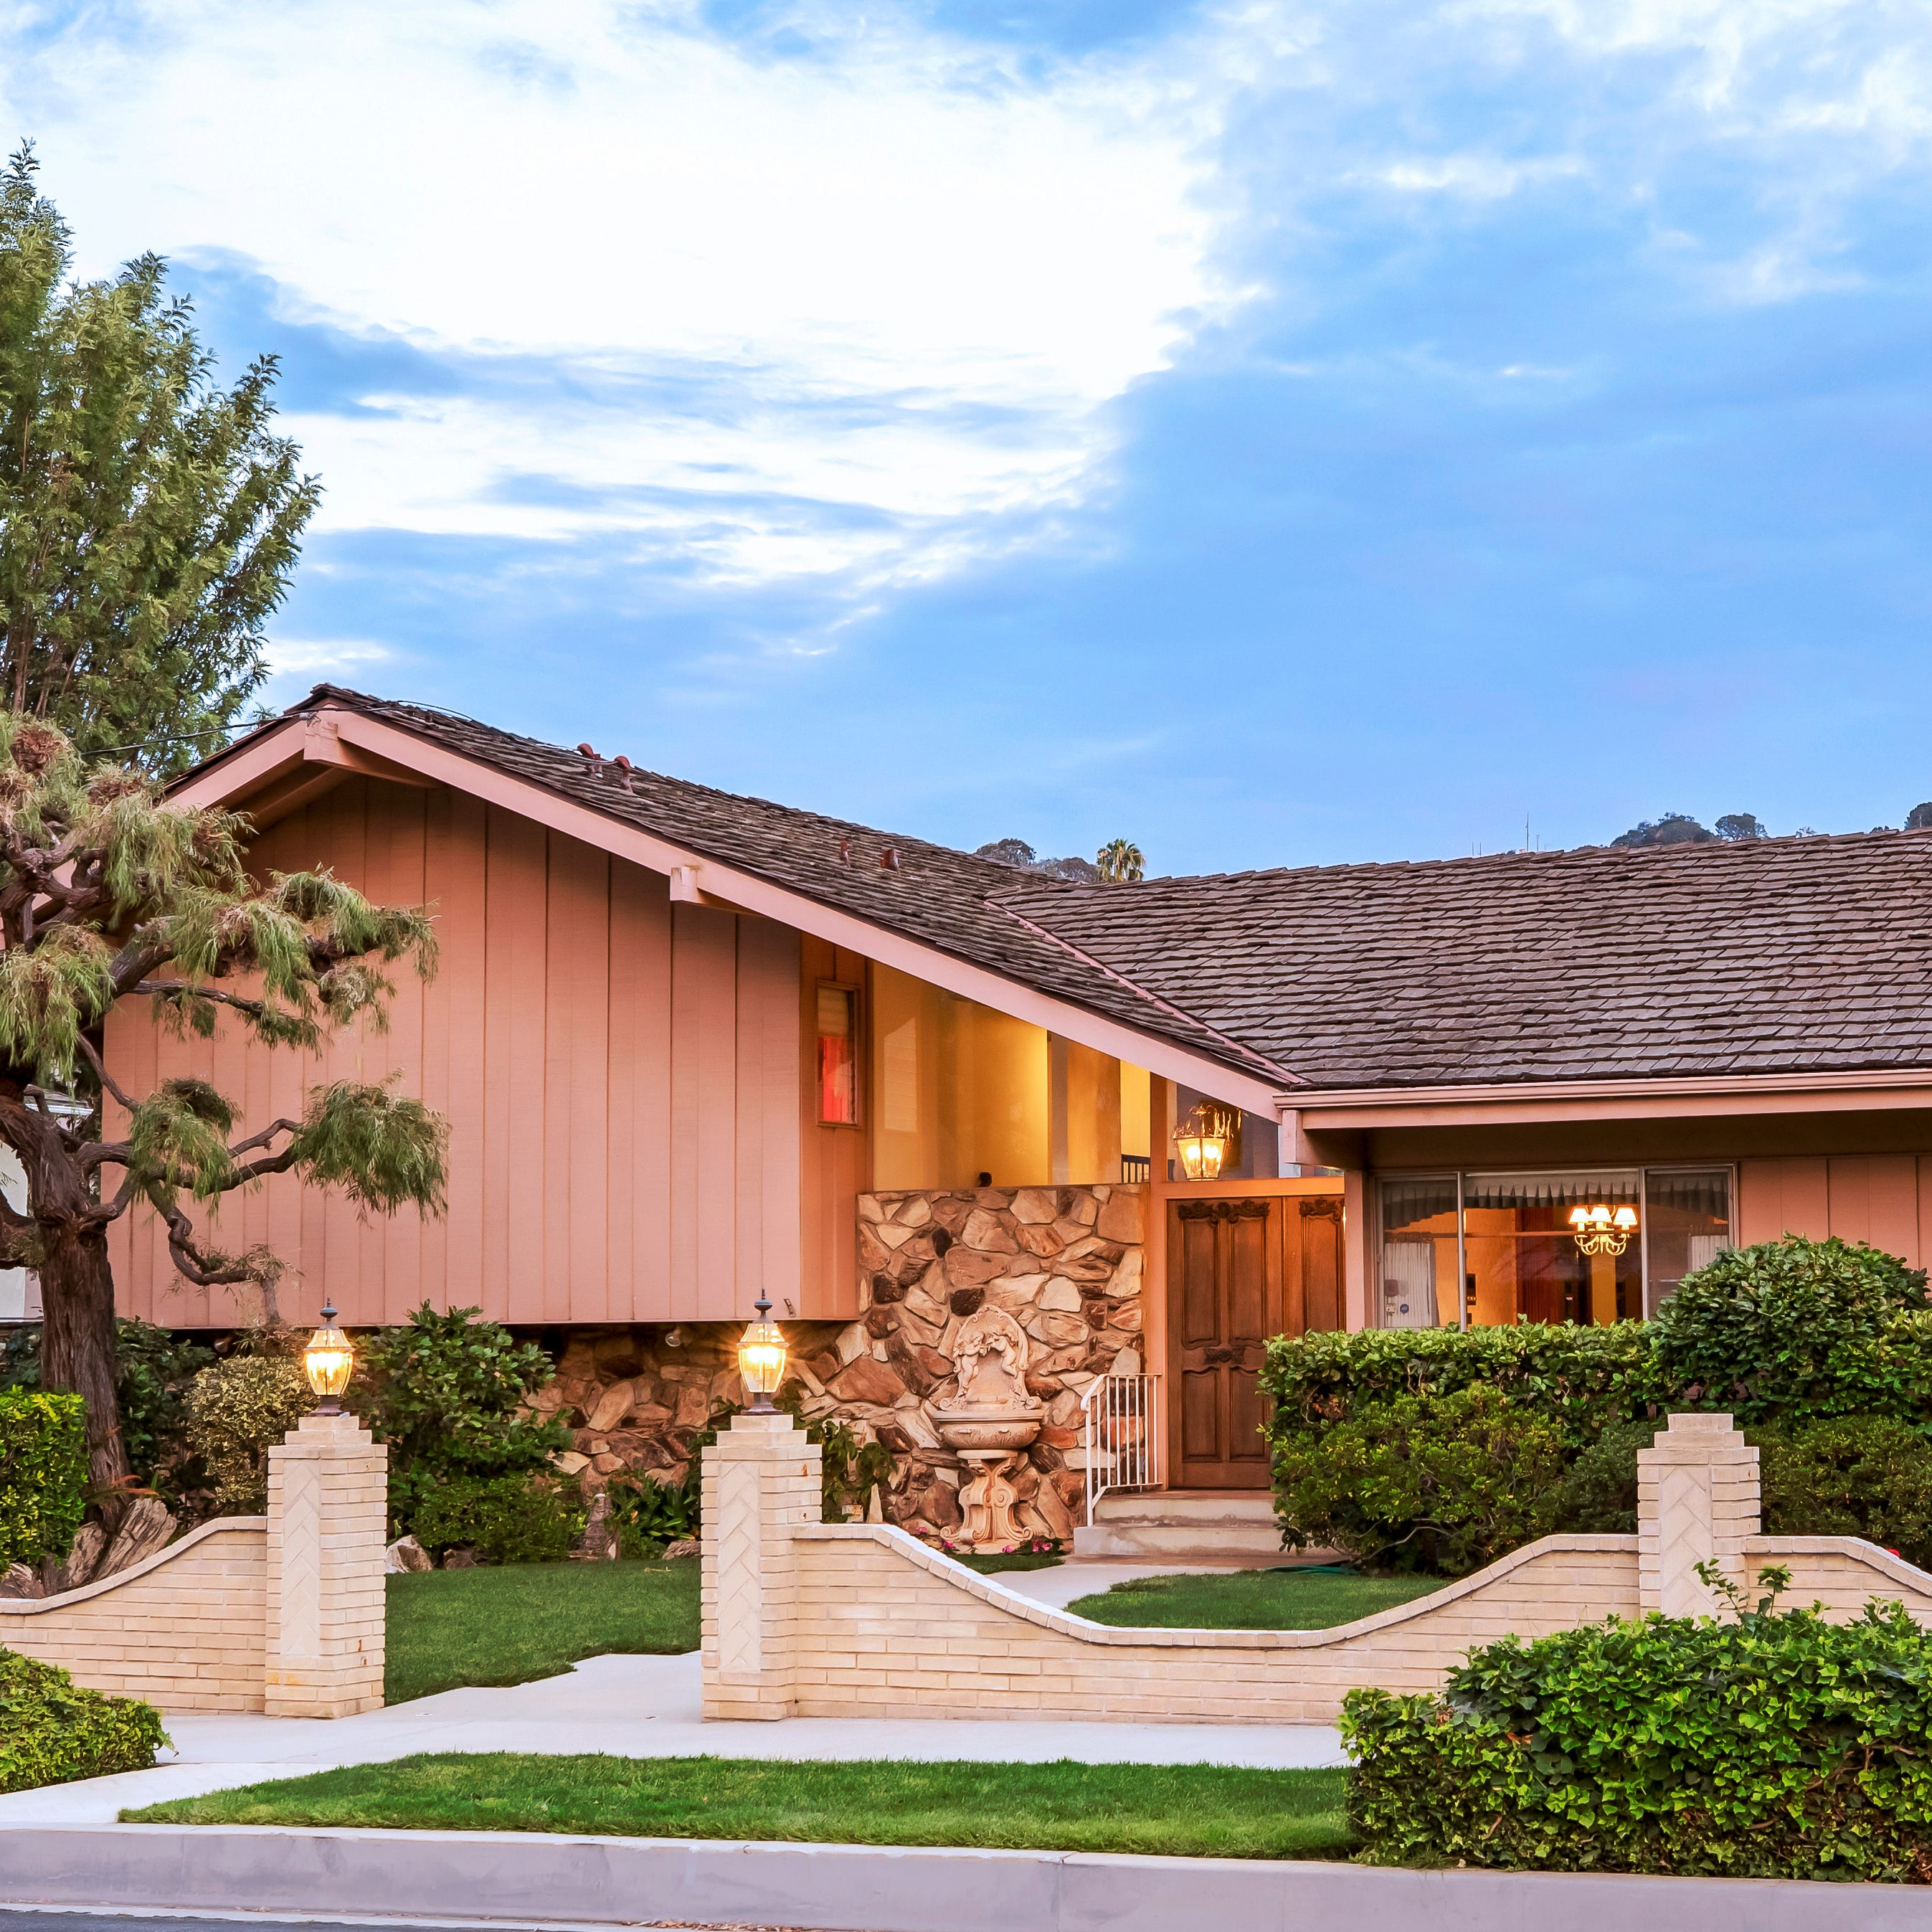 HGTV wins bid on 'The Brady Bunch' house, plans to restore it to its '1970s glory'